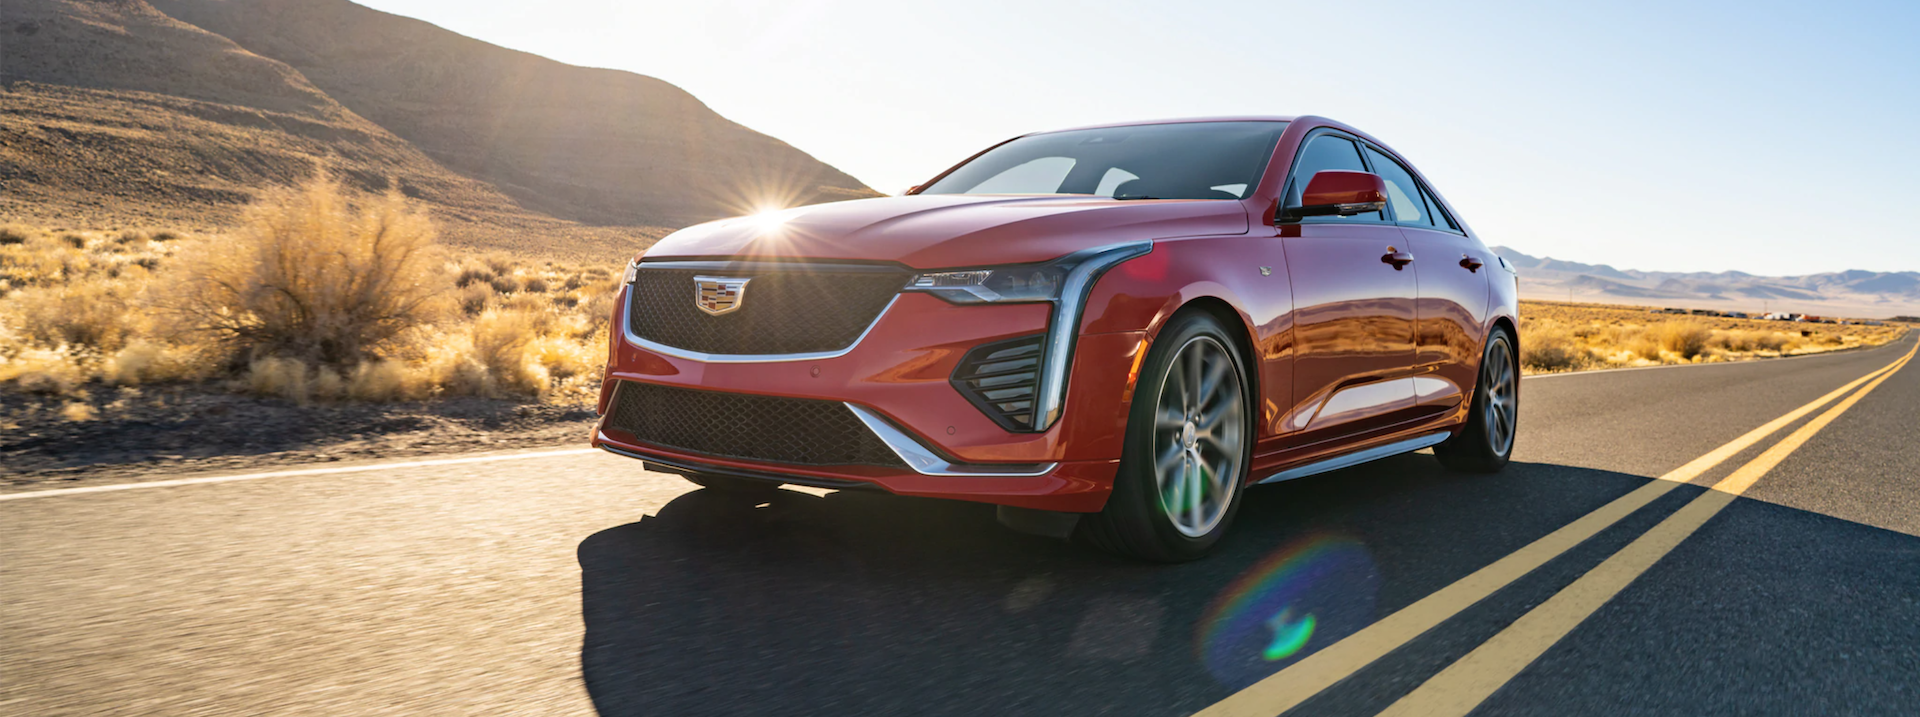 View the 2021 Cadillac CT4 at Team Sewell.